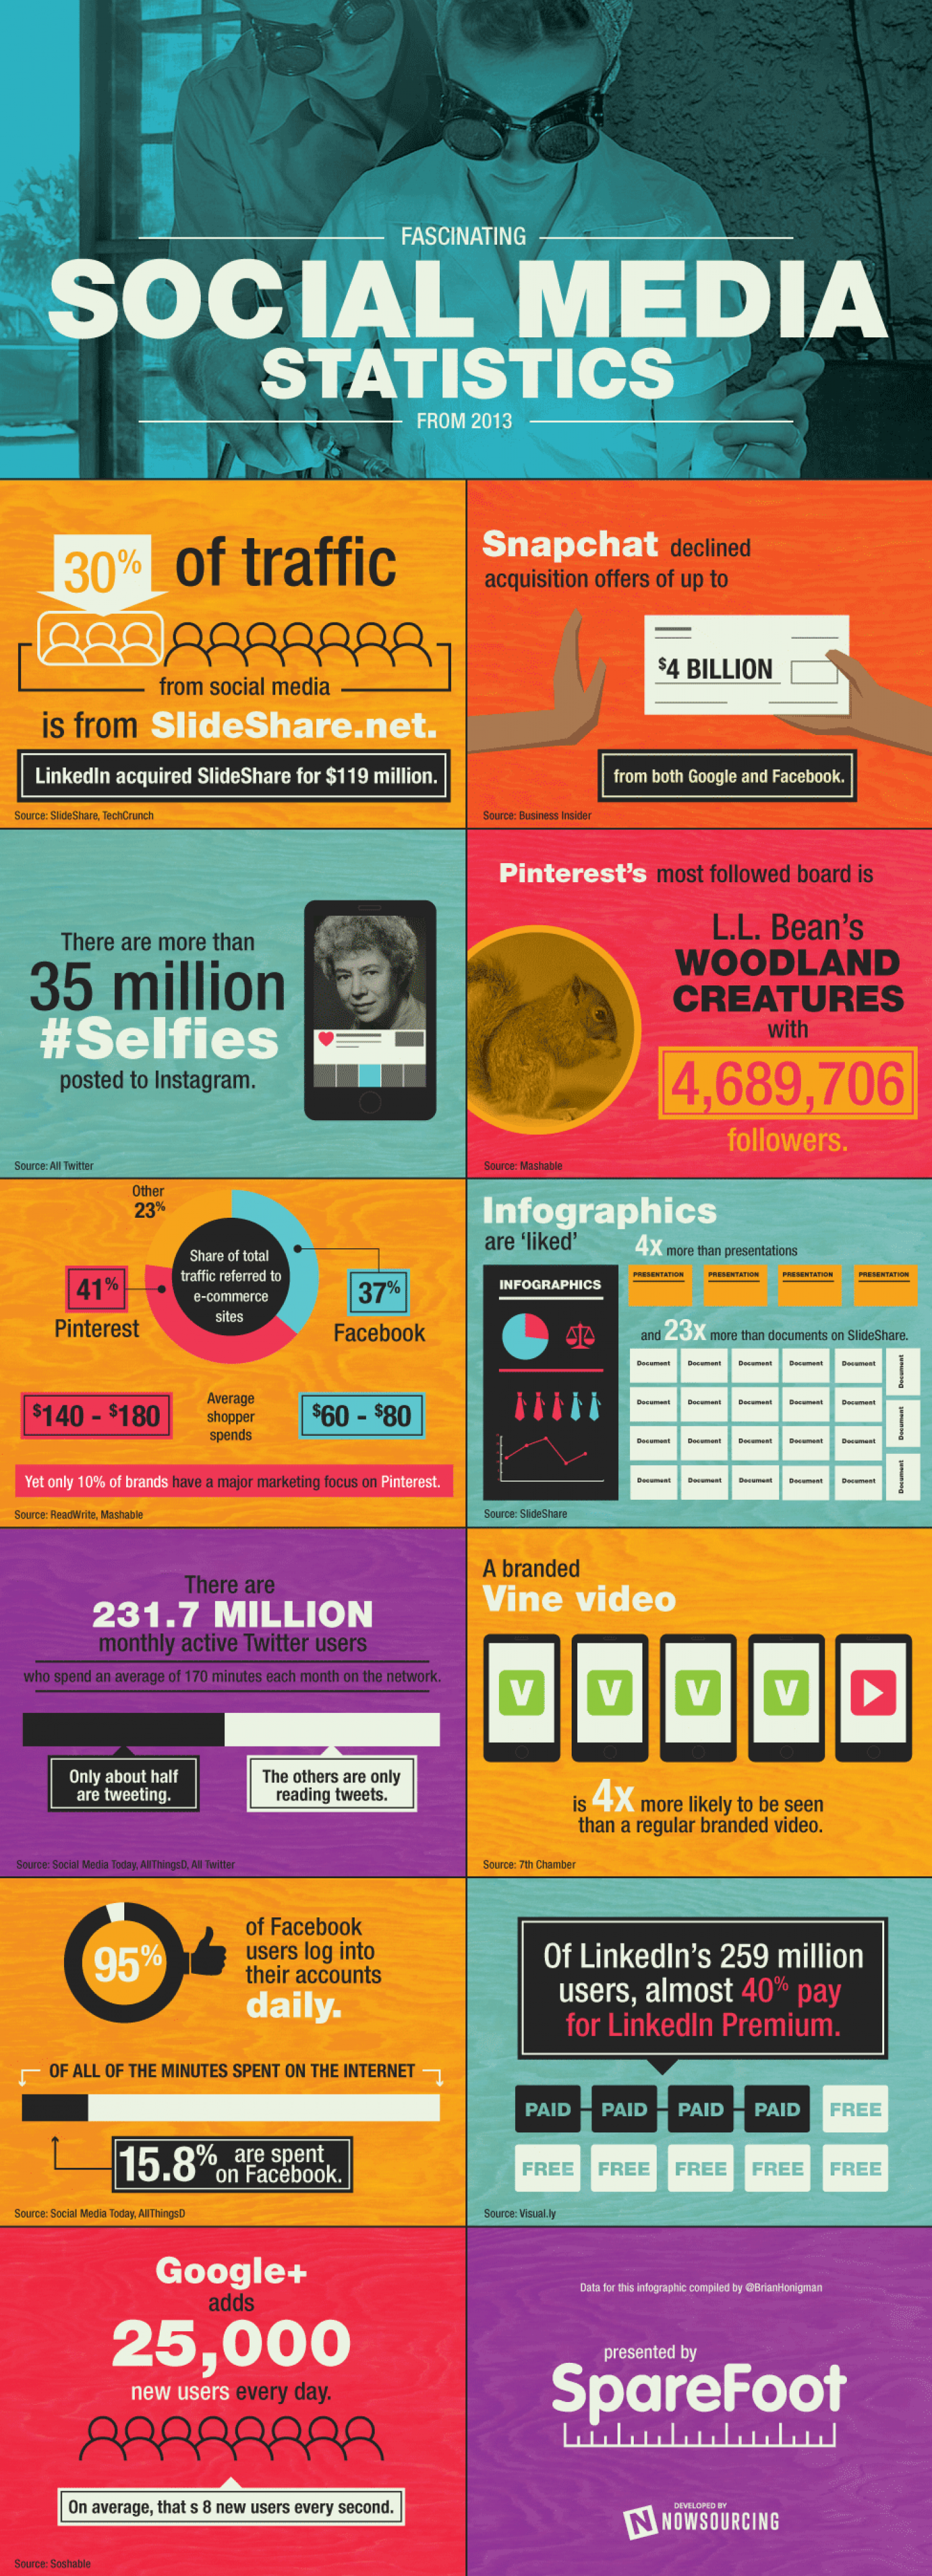 Fascinating Social Media Statistics from 2013 Infographic